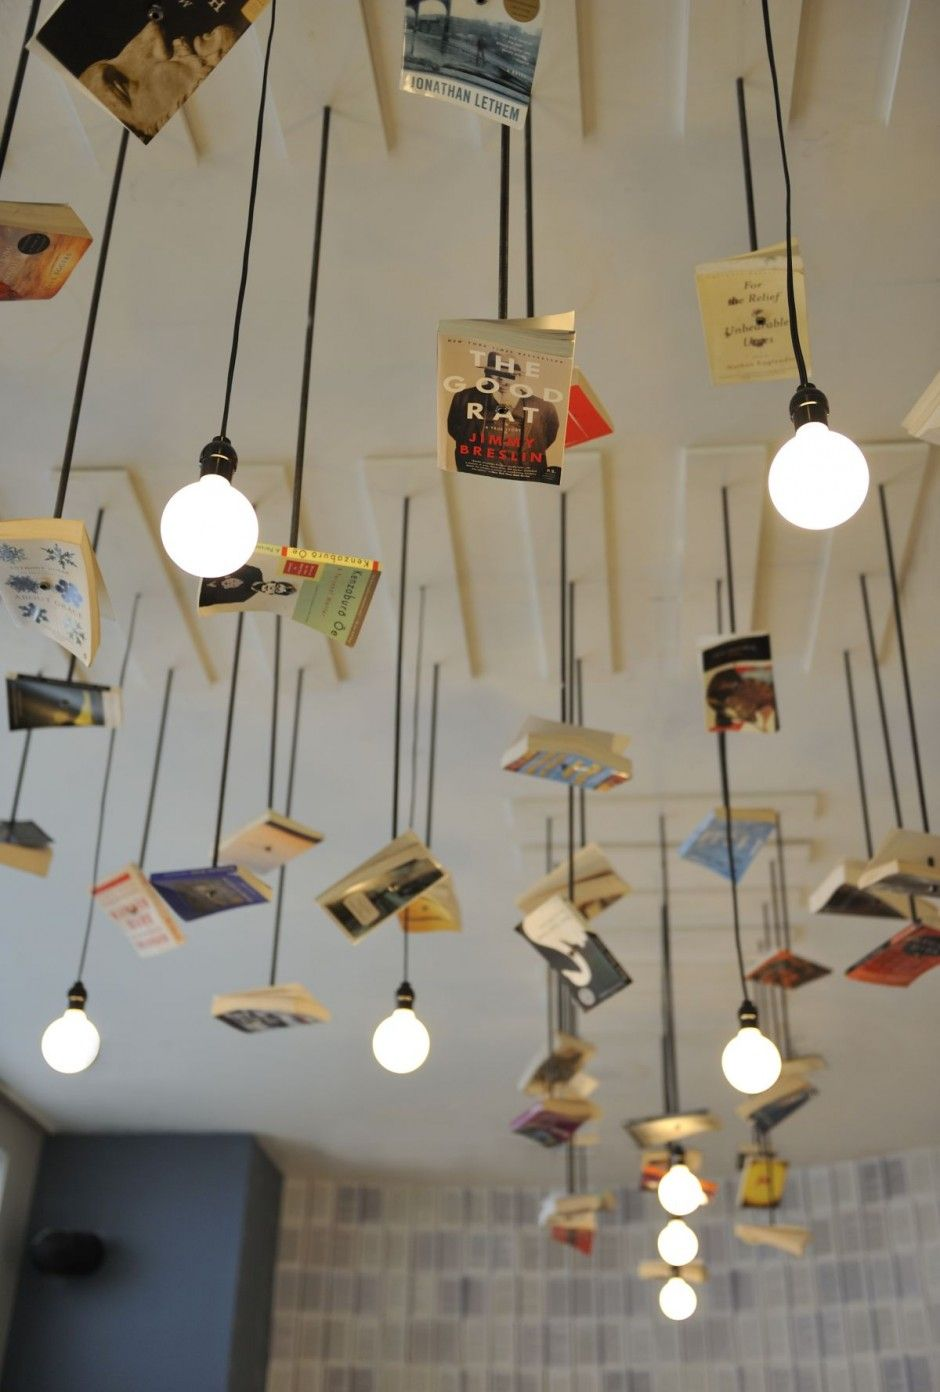 lighting mcnally jackson cafe lighting design with hanging scattering of books